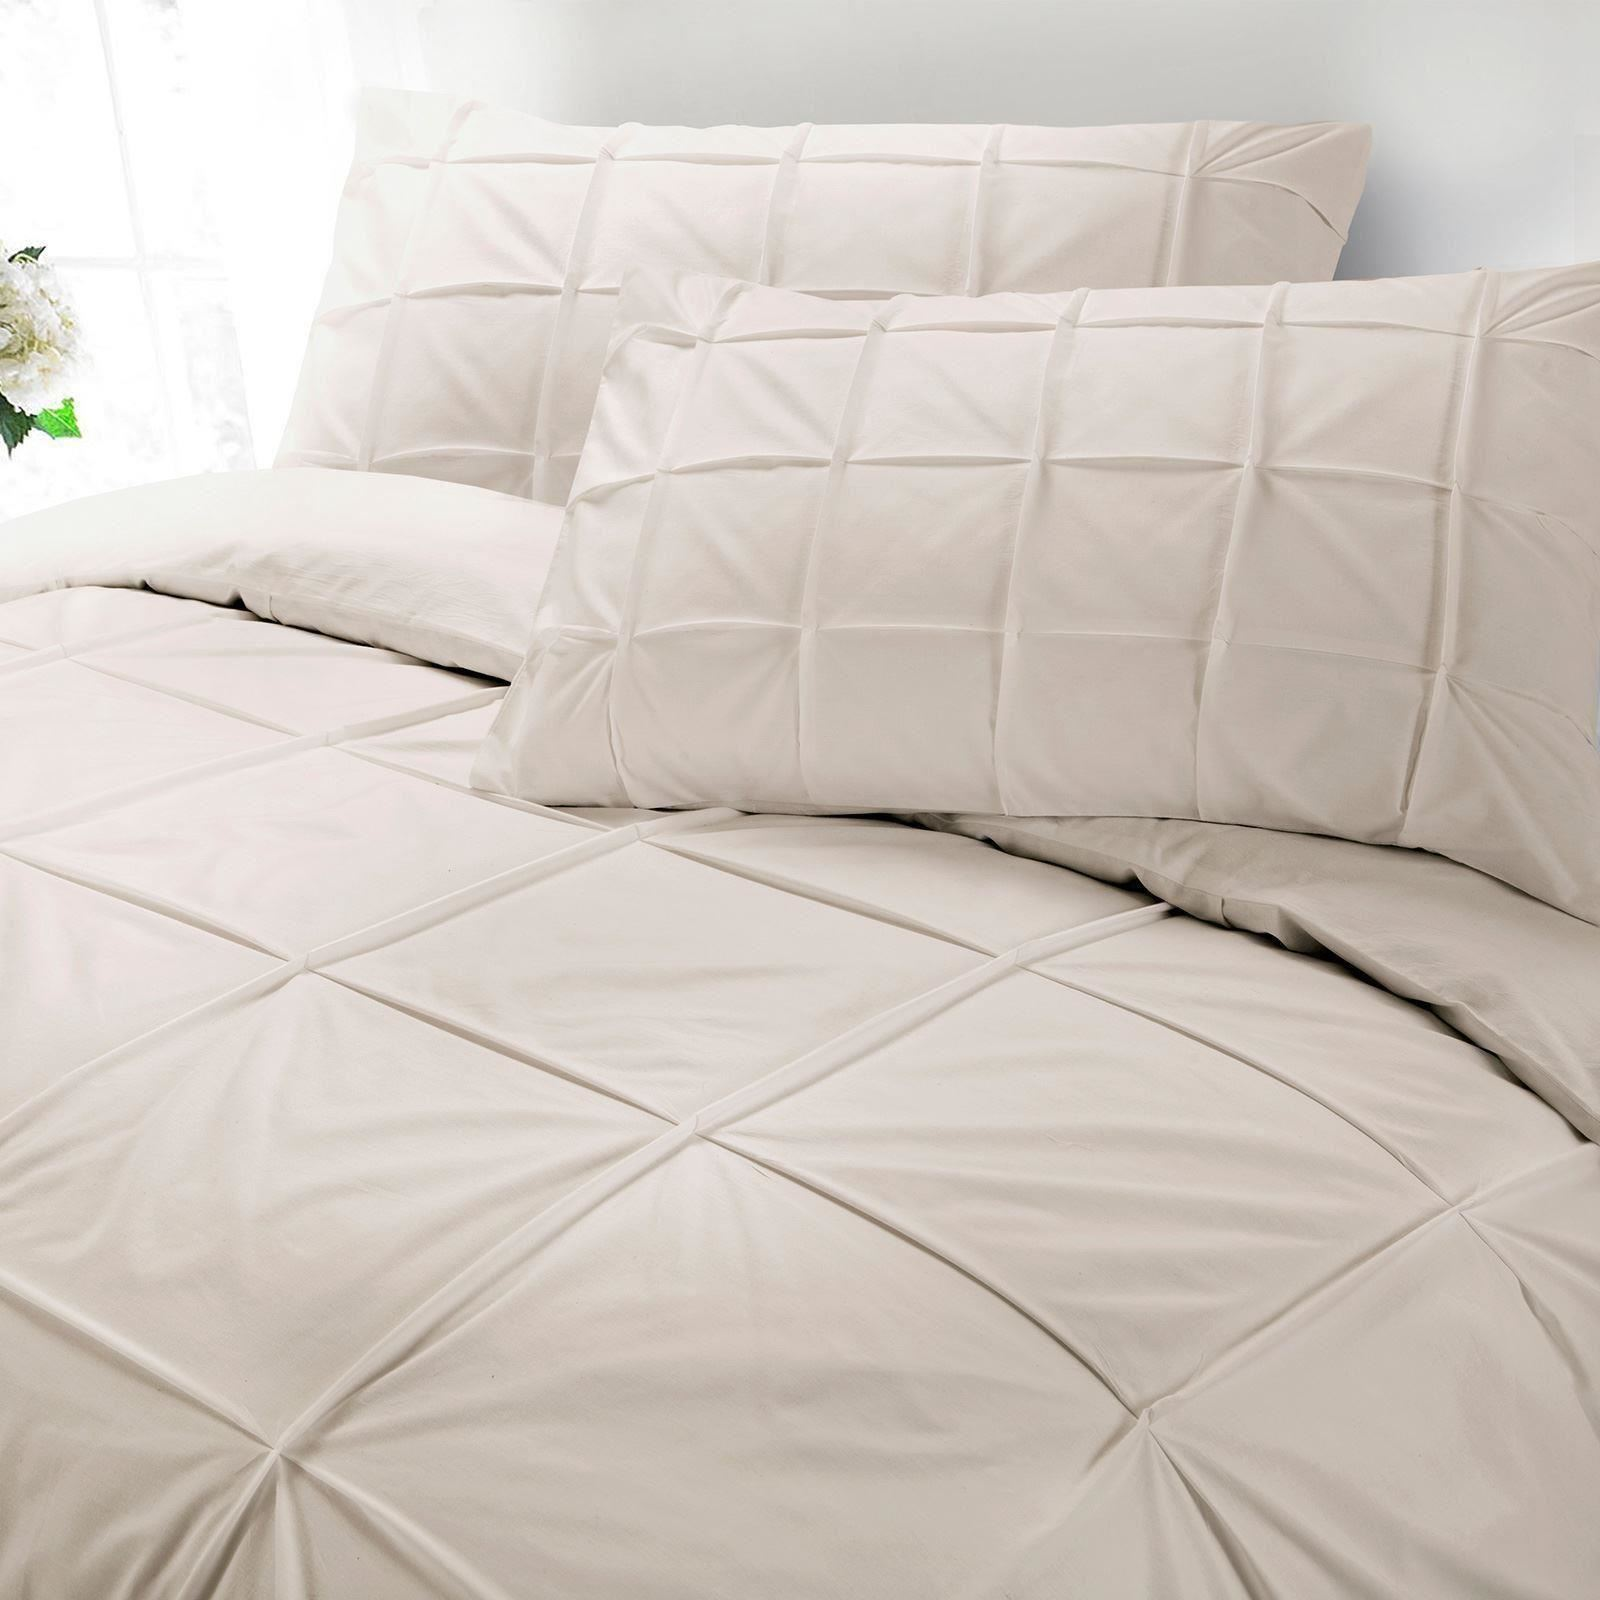 Cartier-100-Egyptian-Cotton-200-Thread-Percale-Pintuck-Duvet-Cover-Bedding-Set thumbnail 5